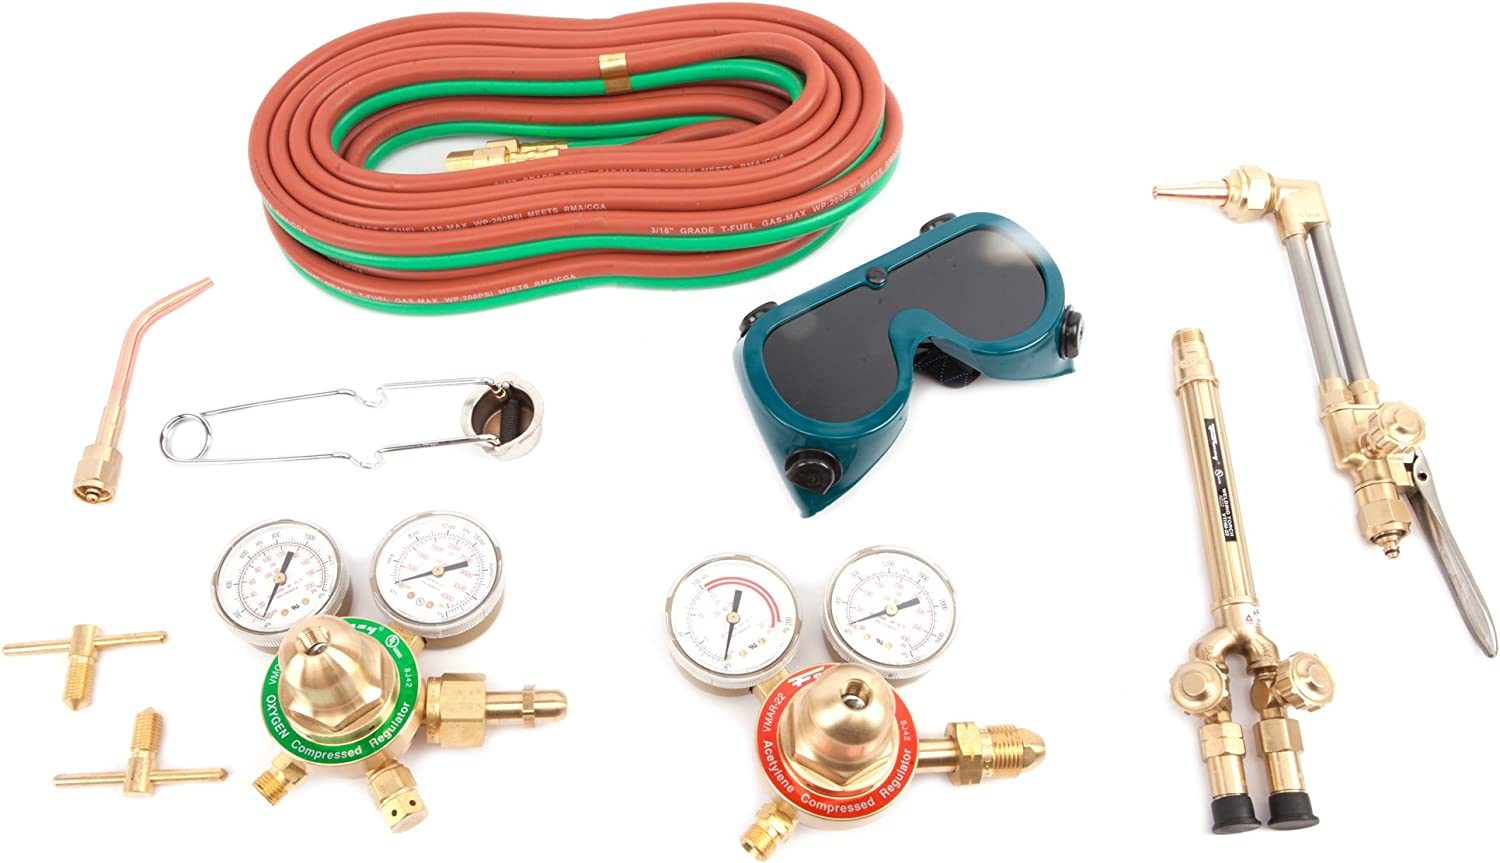 Hose Oxygen Acetylene Cutting Torch Full Kit with Cart Gauges Goggles,/& Torch